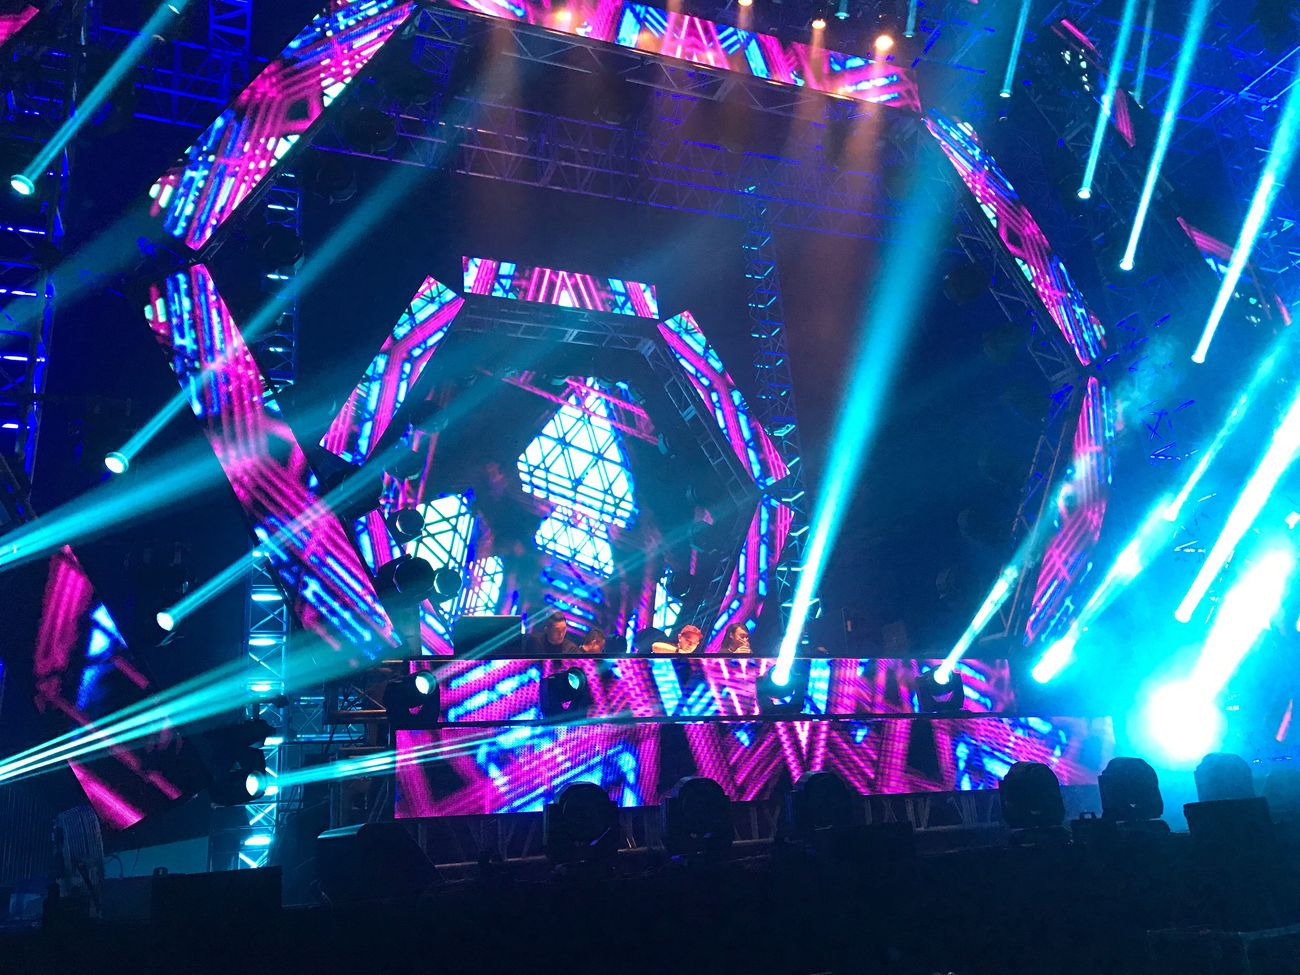 Goldfish & Blink, Day 1. DWP16 at Garuda Land Jiexpo Kemayoran. Djakarta Warehouse Project 2016 By ITag Djakarta Warehouse Project By ITag DanceMusicFestival By ITag Live In Concert By ITag